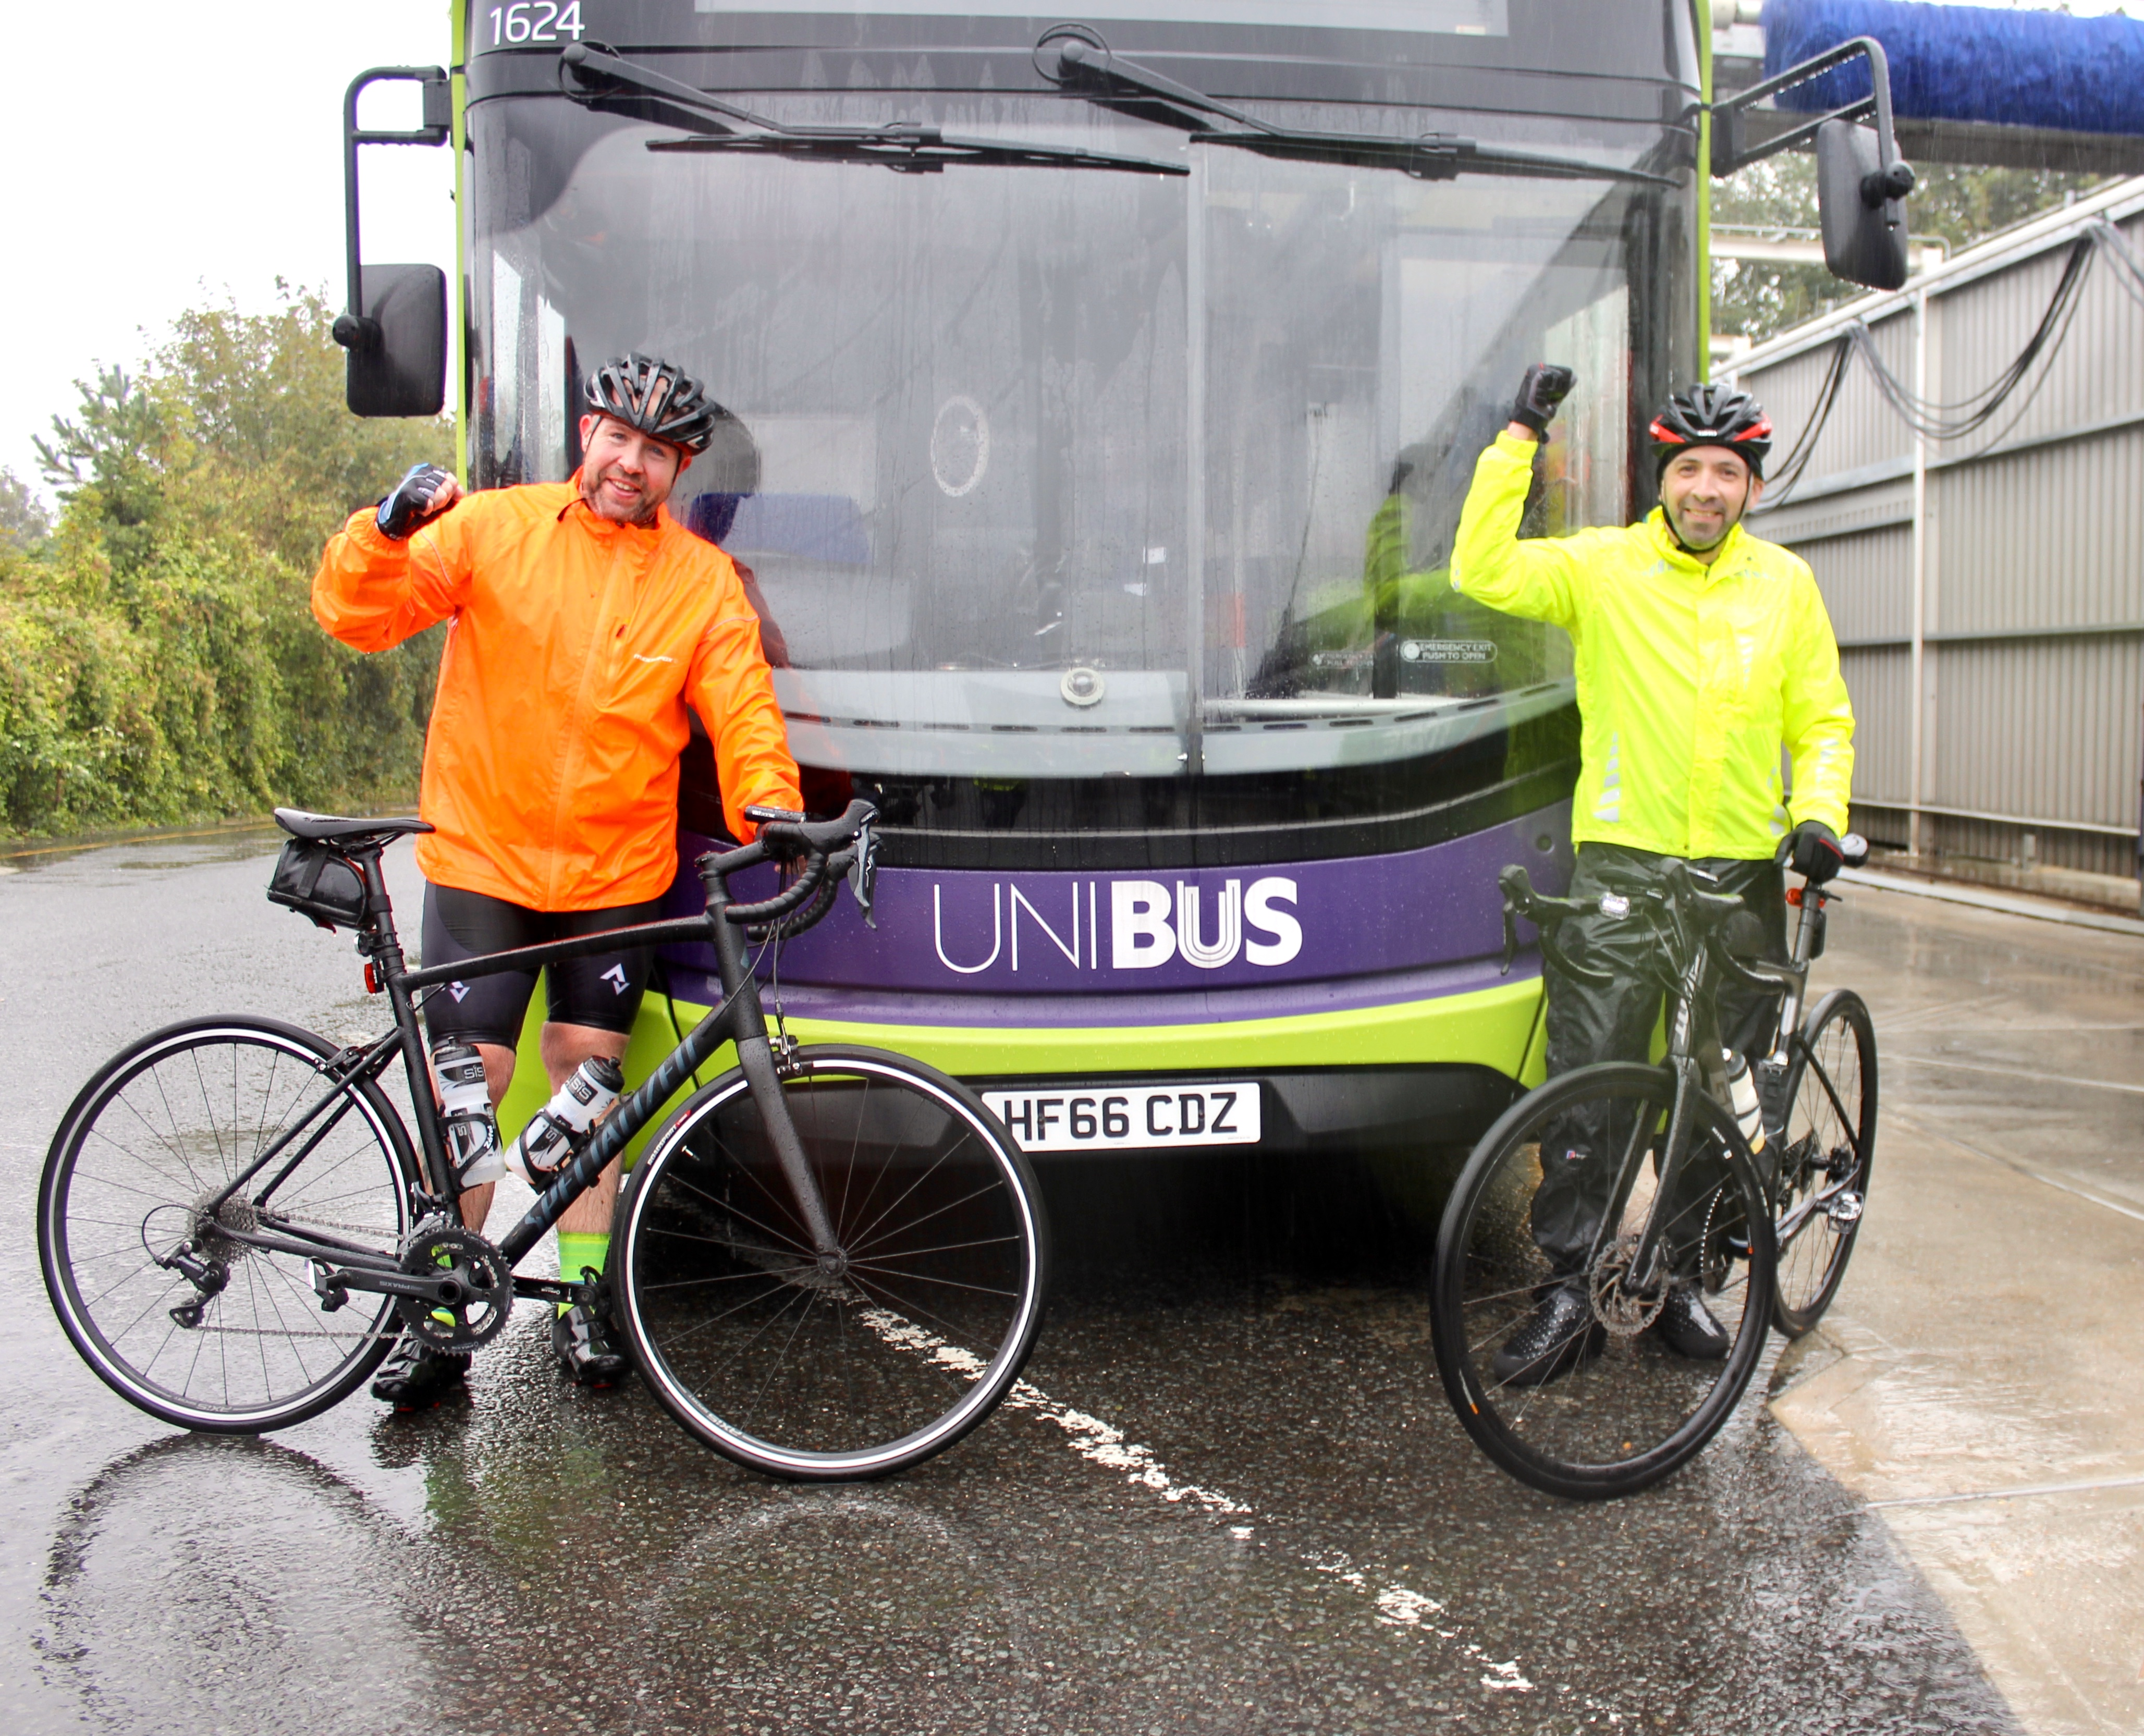 kris and martin charity cycle